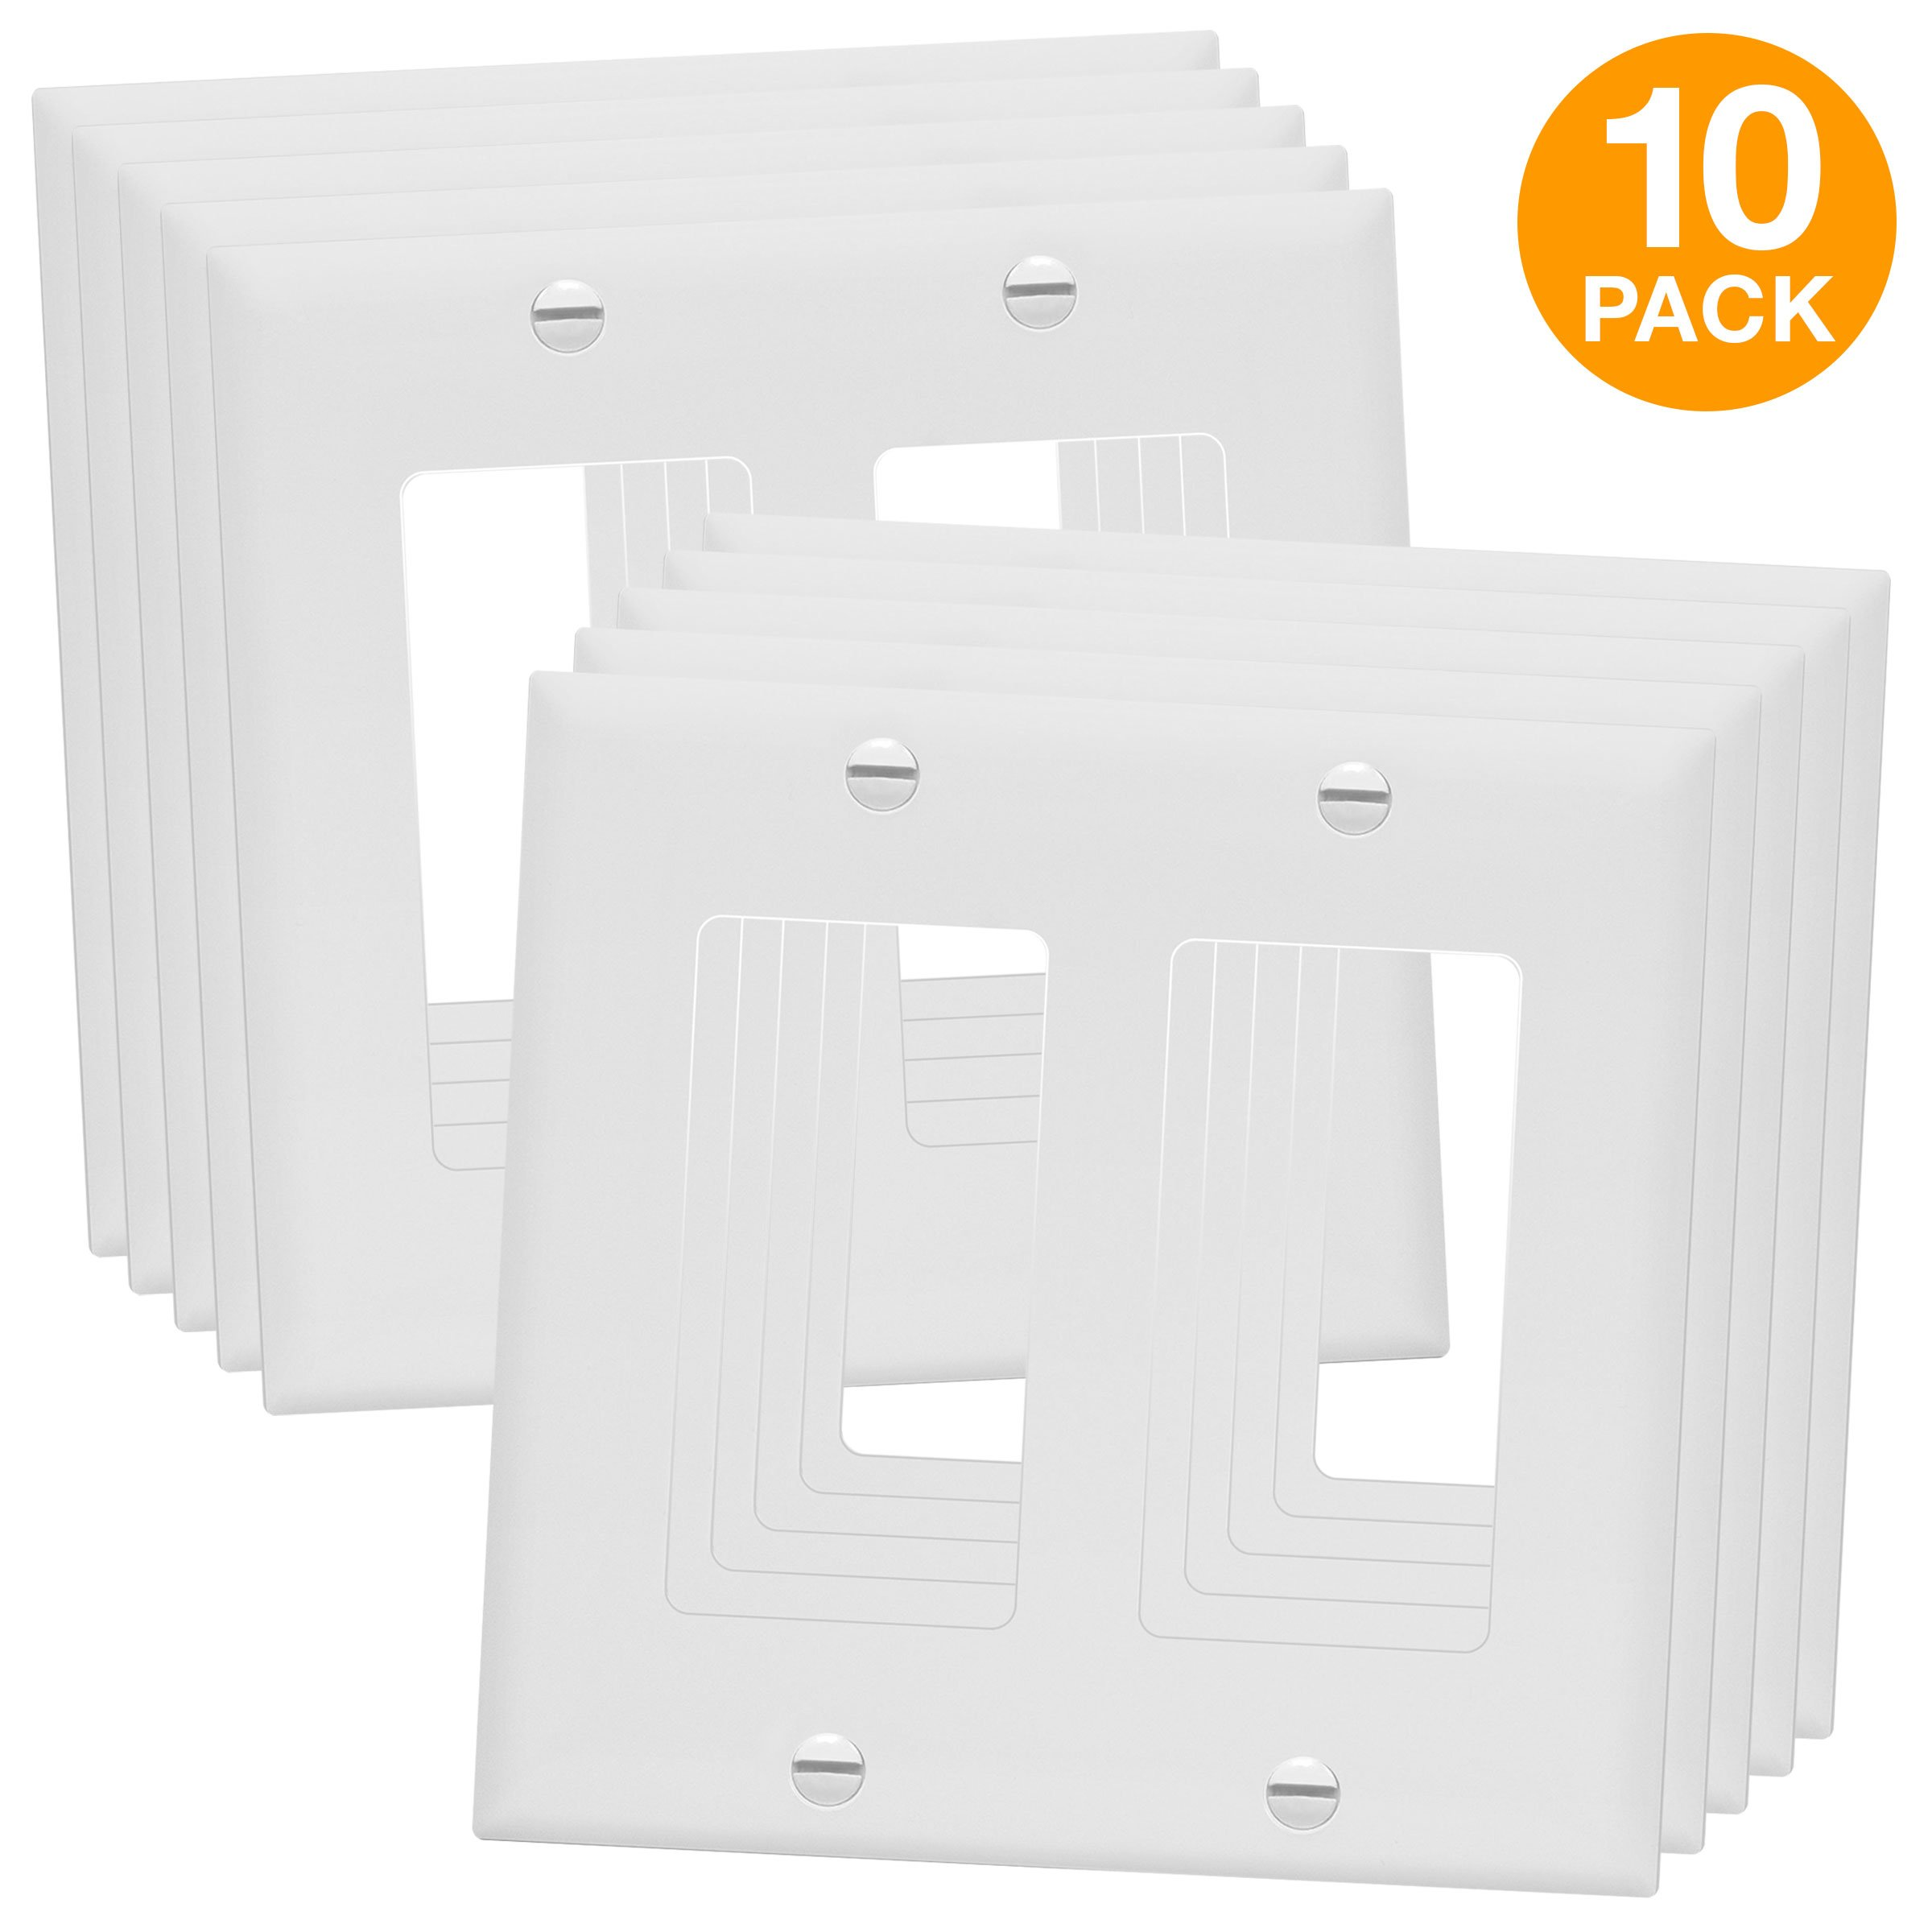 Enerlites 8832-W-10PCS Decorator Light Switch/Receptacle Outlet Wall Plate, Standard Size 2-Gang, Polycarbonate Thermoplastic,White (10 Pack)